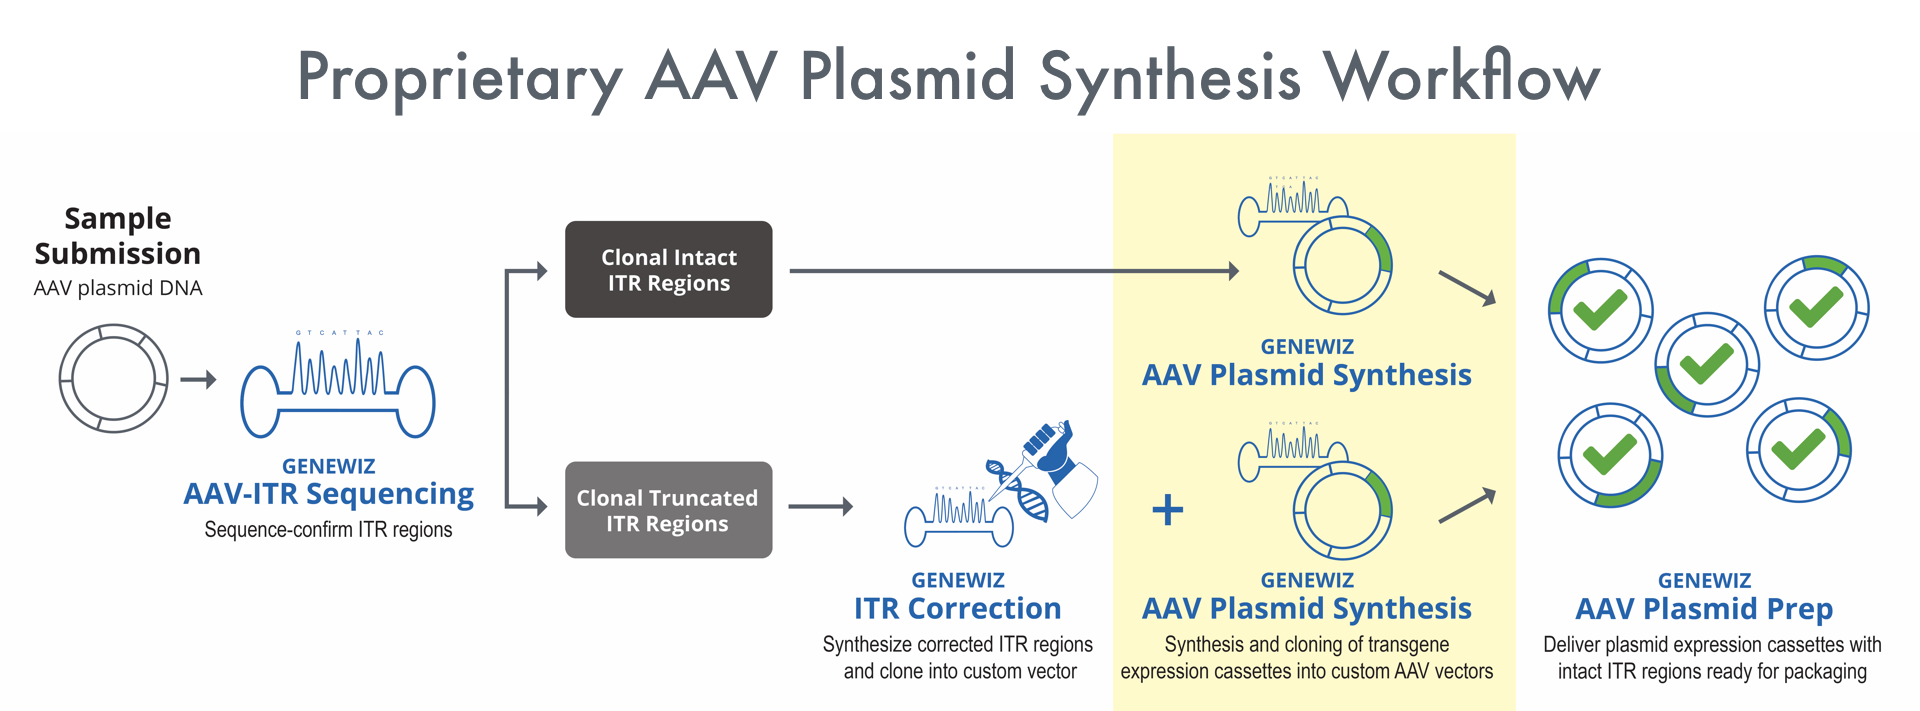 GS_AAV_Synthesis_Workflow_April16_2020_option2-1